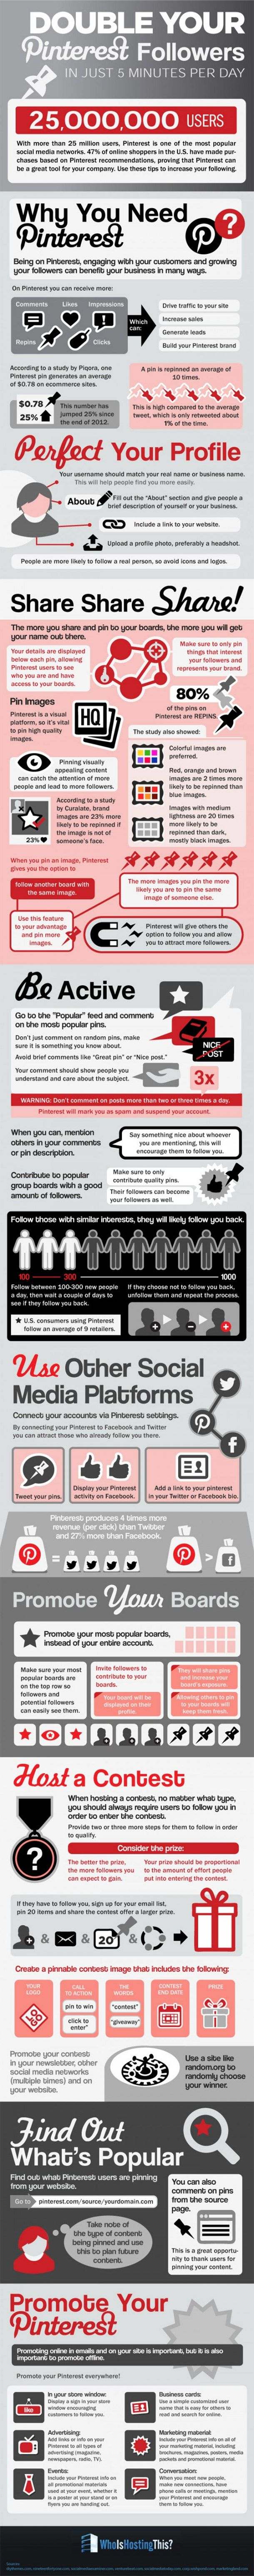 Find out How You Can Get More Pinterest Followers in this #socialmefia #Infographic